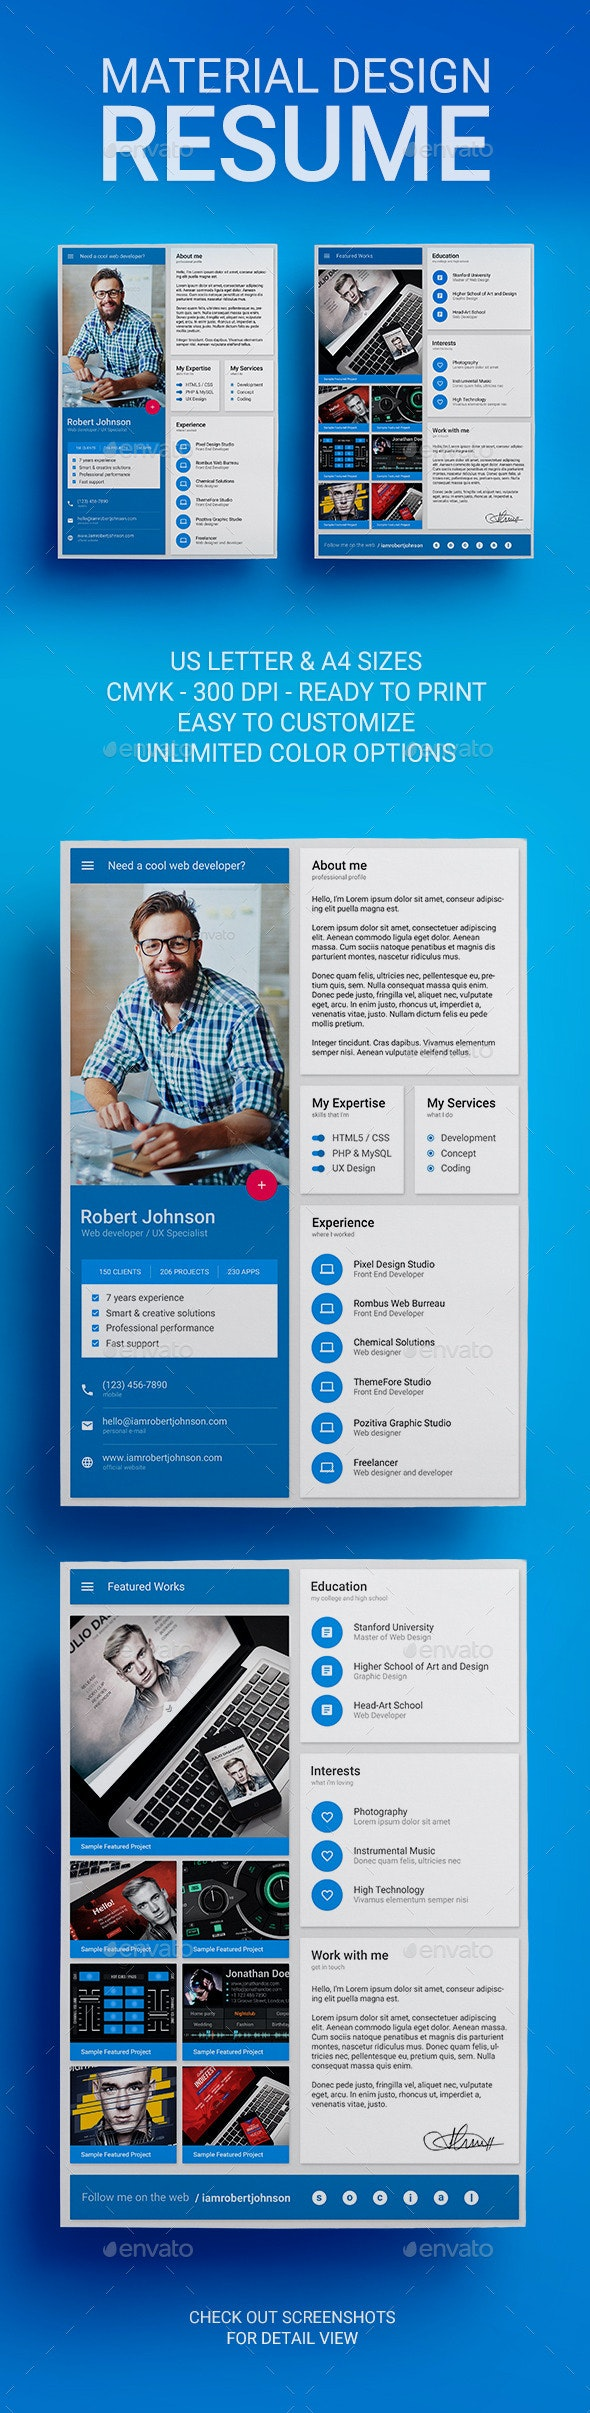 MaDe - Material Design Resume / CV Template - Resumes Stationery